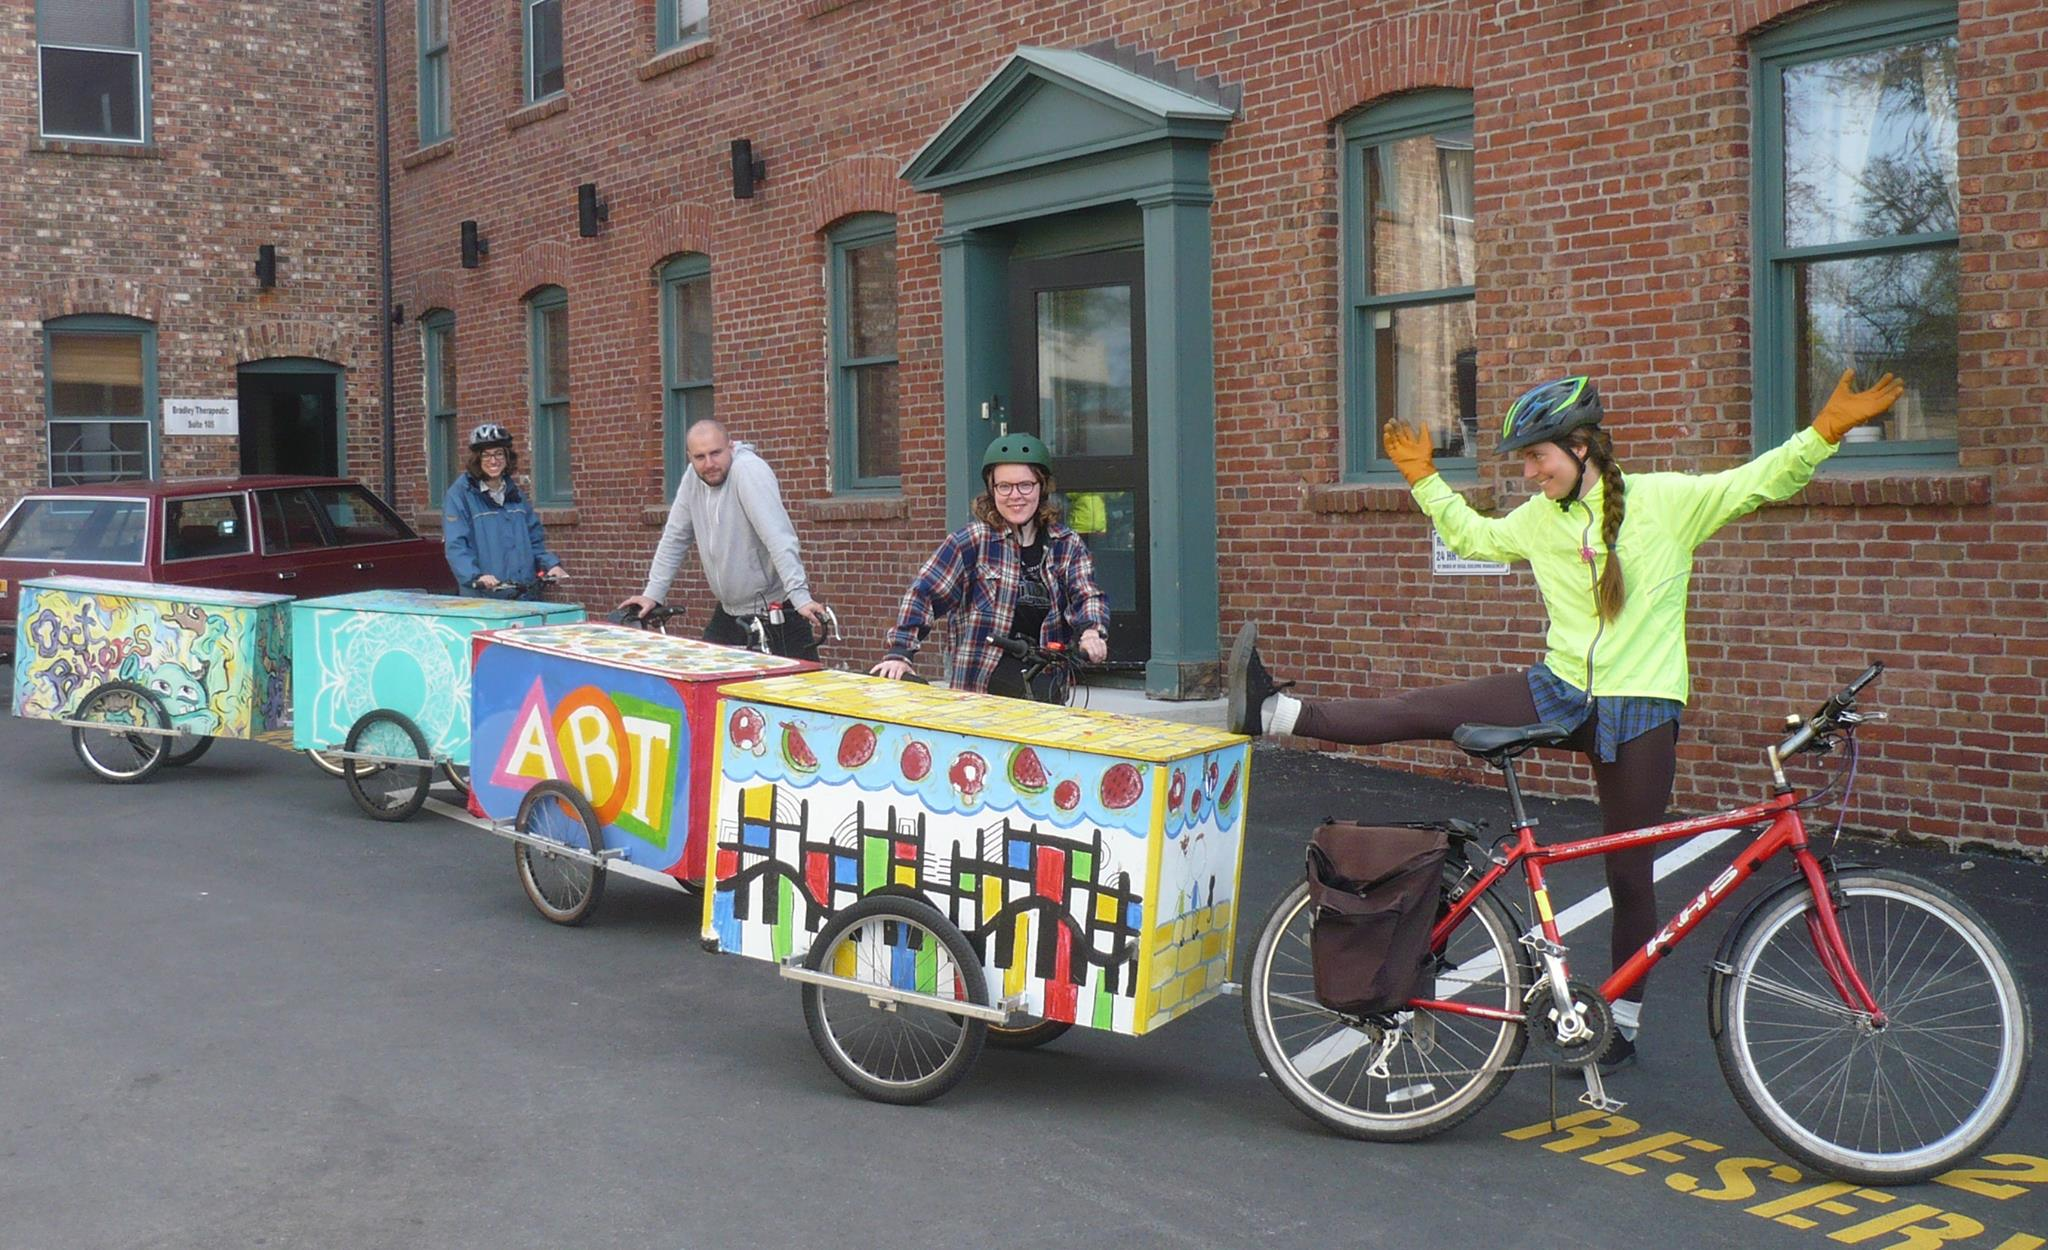 Art bikers with trailers